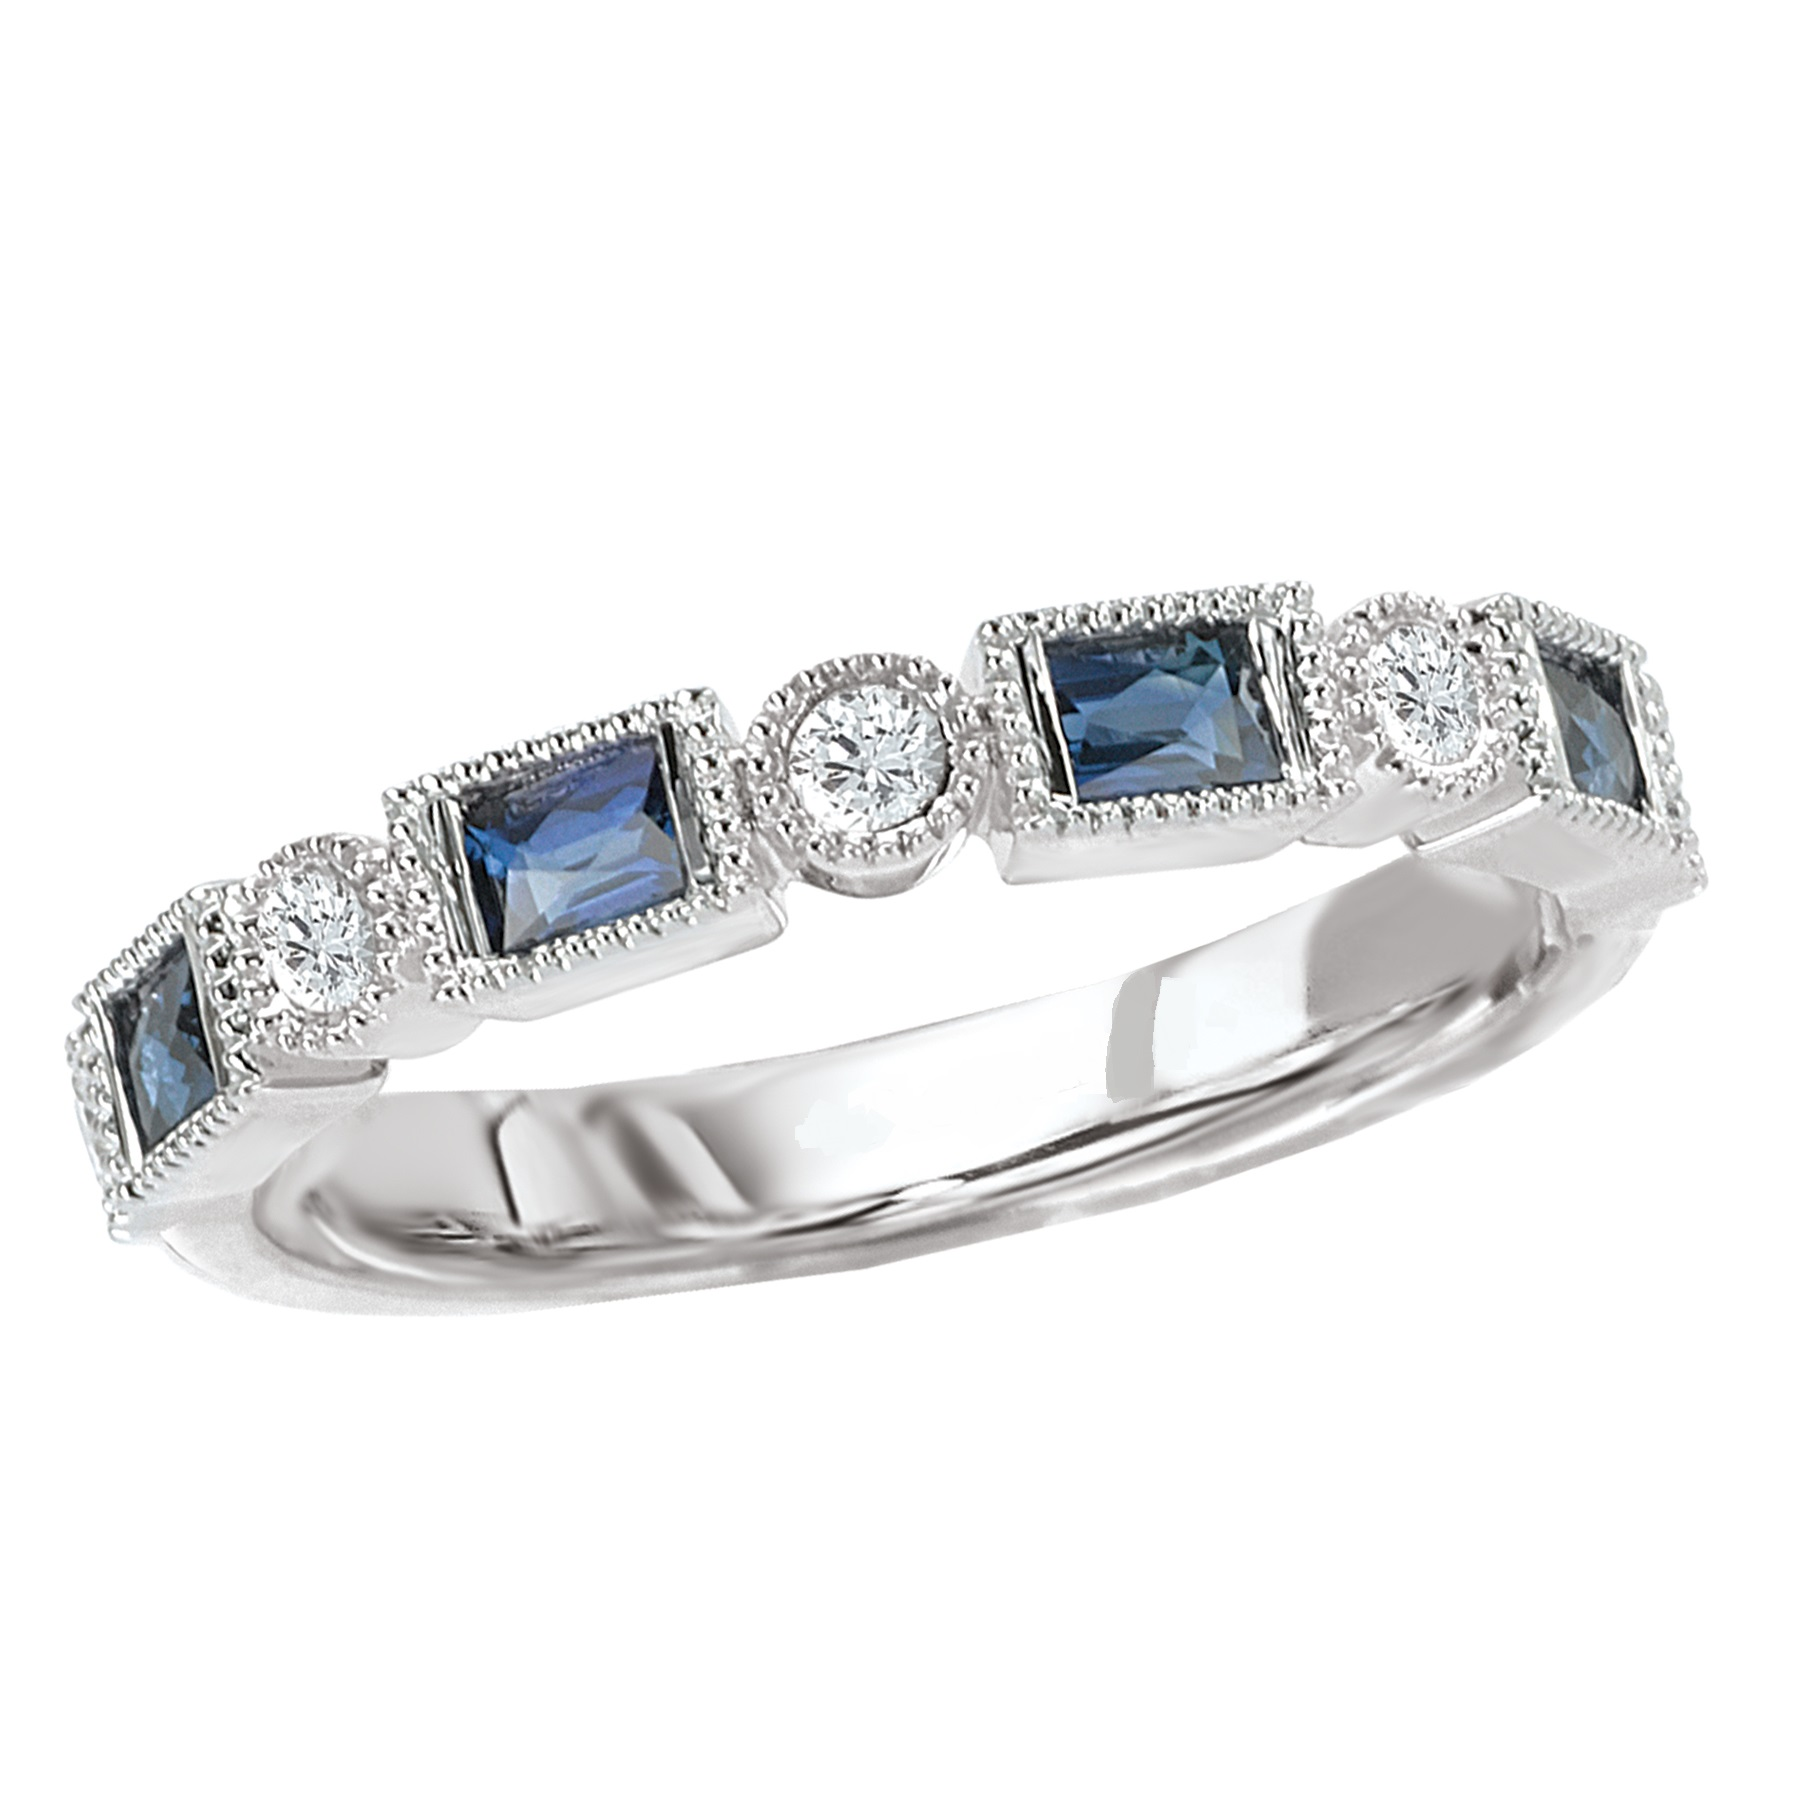 Ladies Wedding Band by Romance Diamond